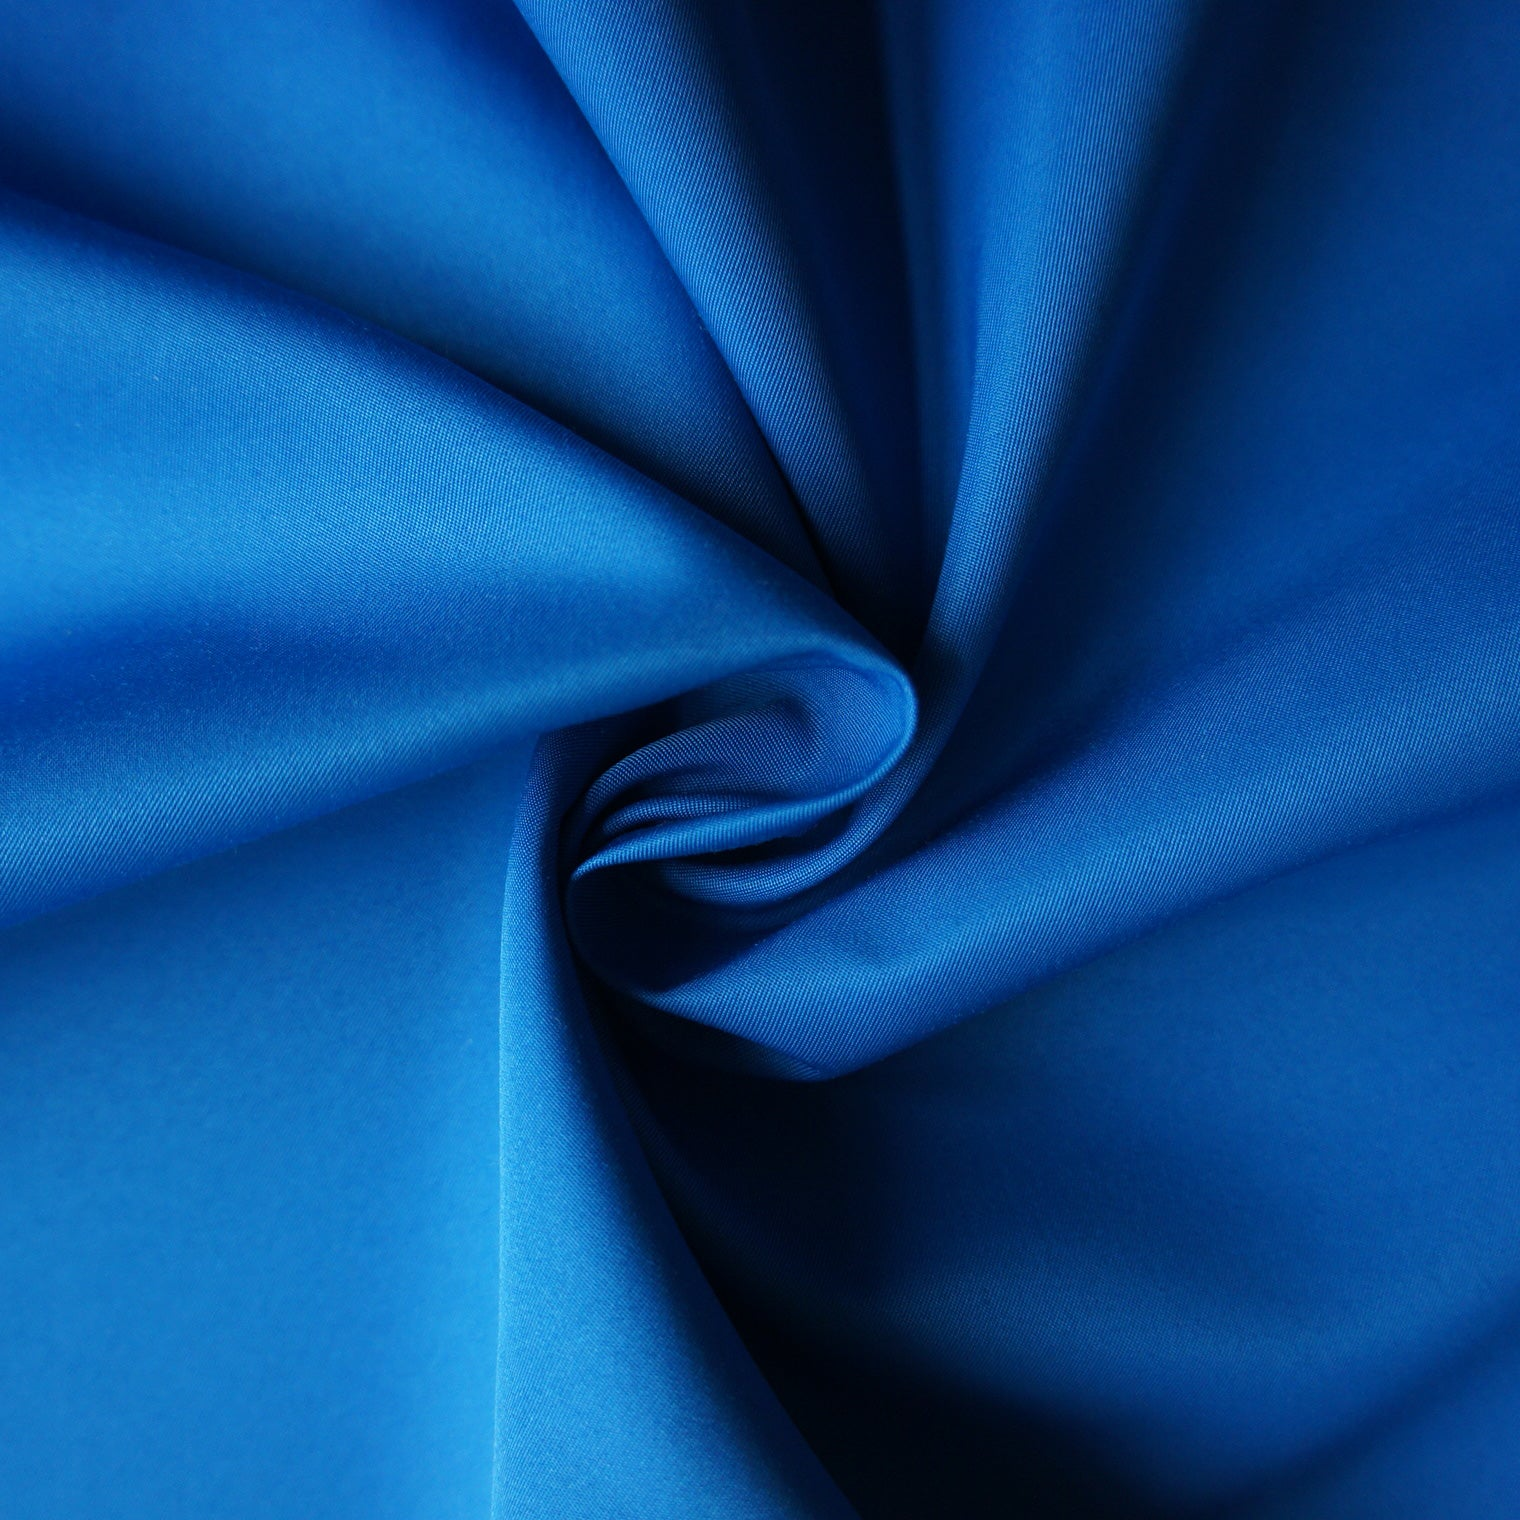 Blue recycled polyester satin fabric, twisted to show the drape